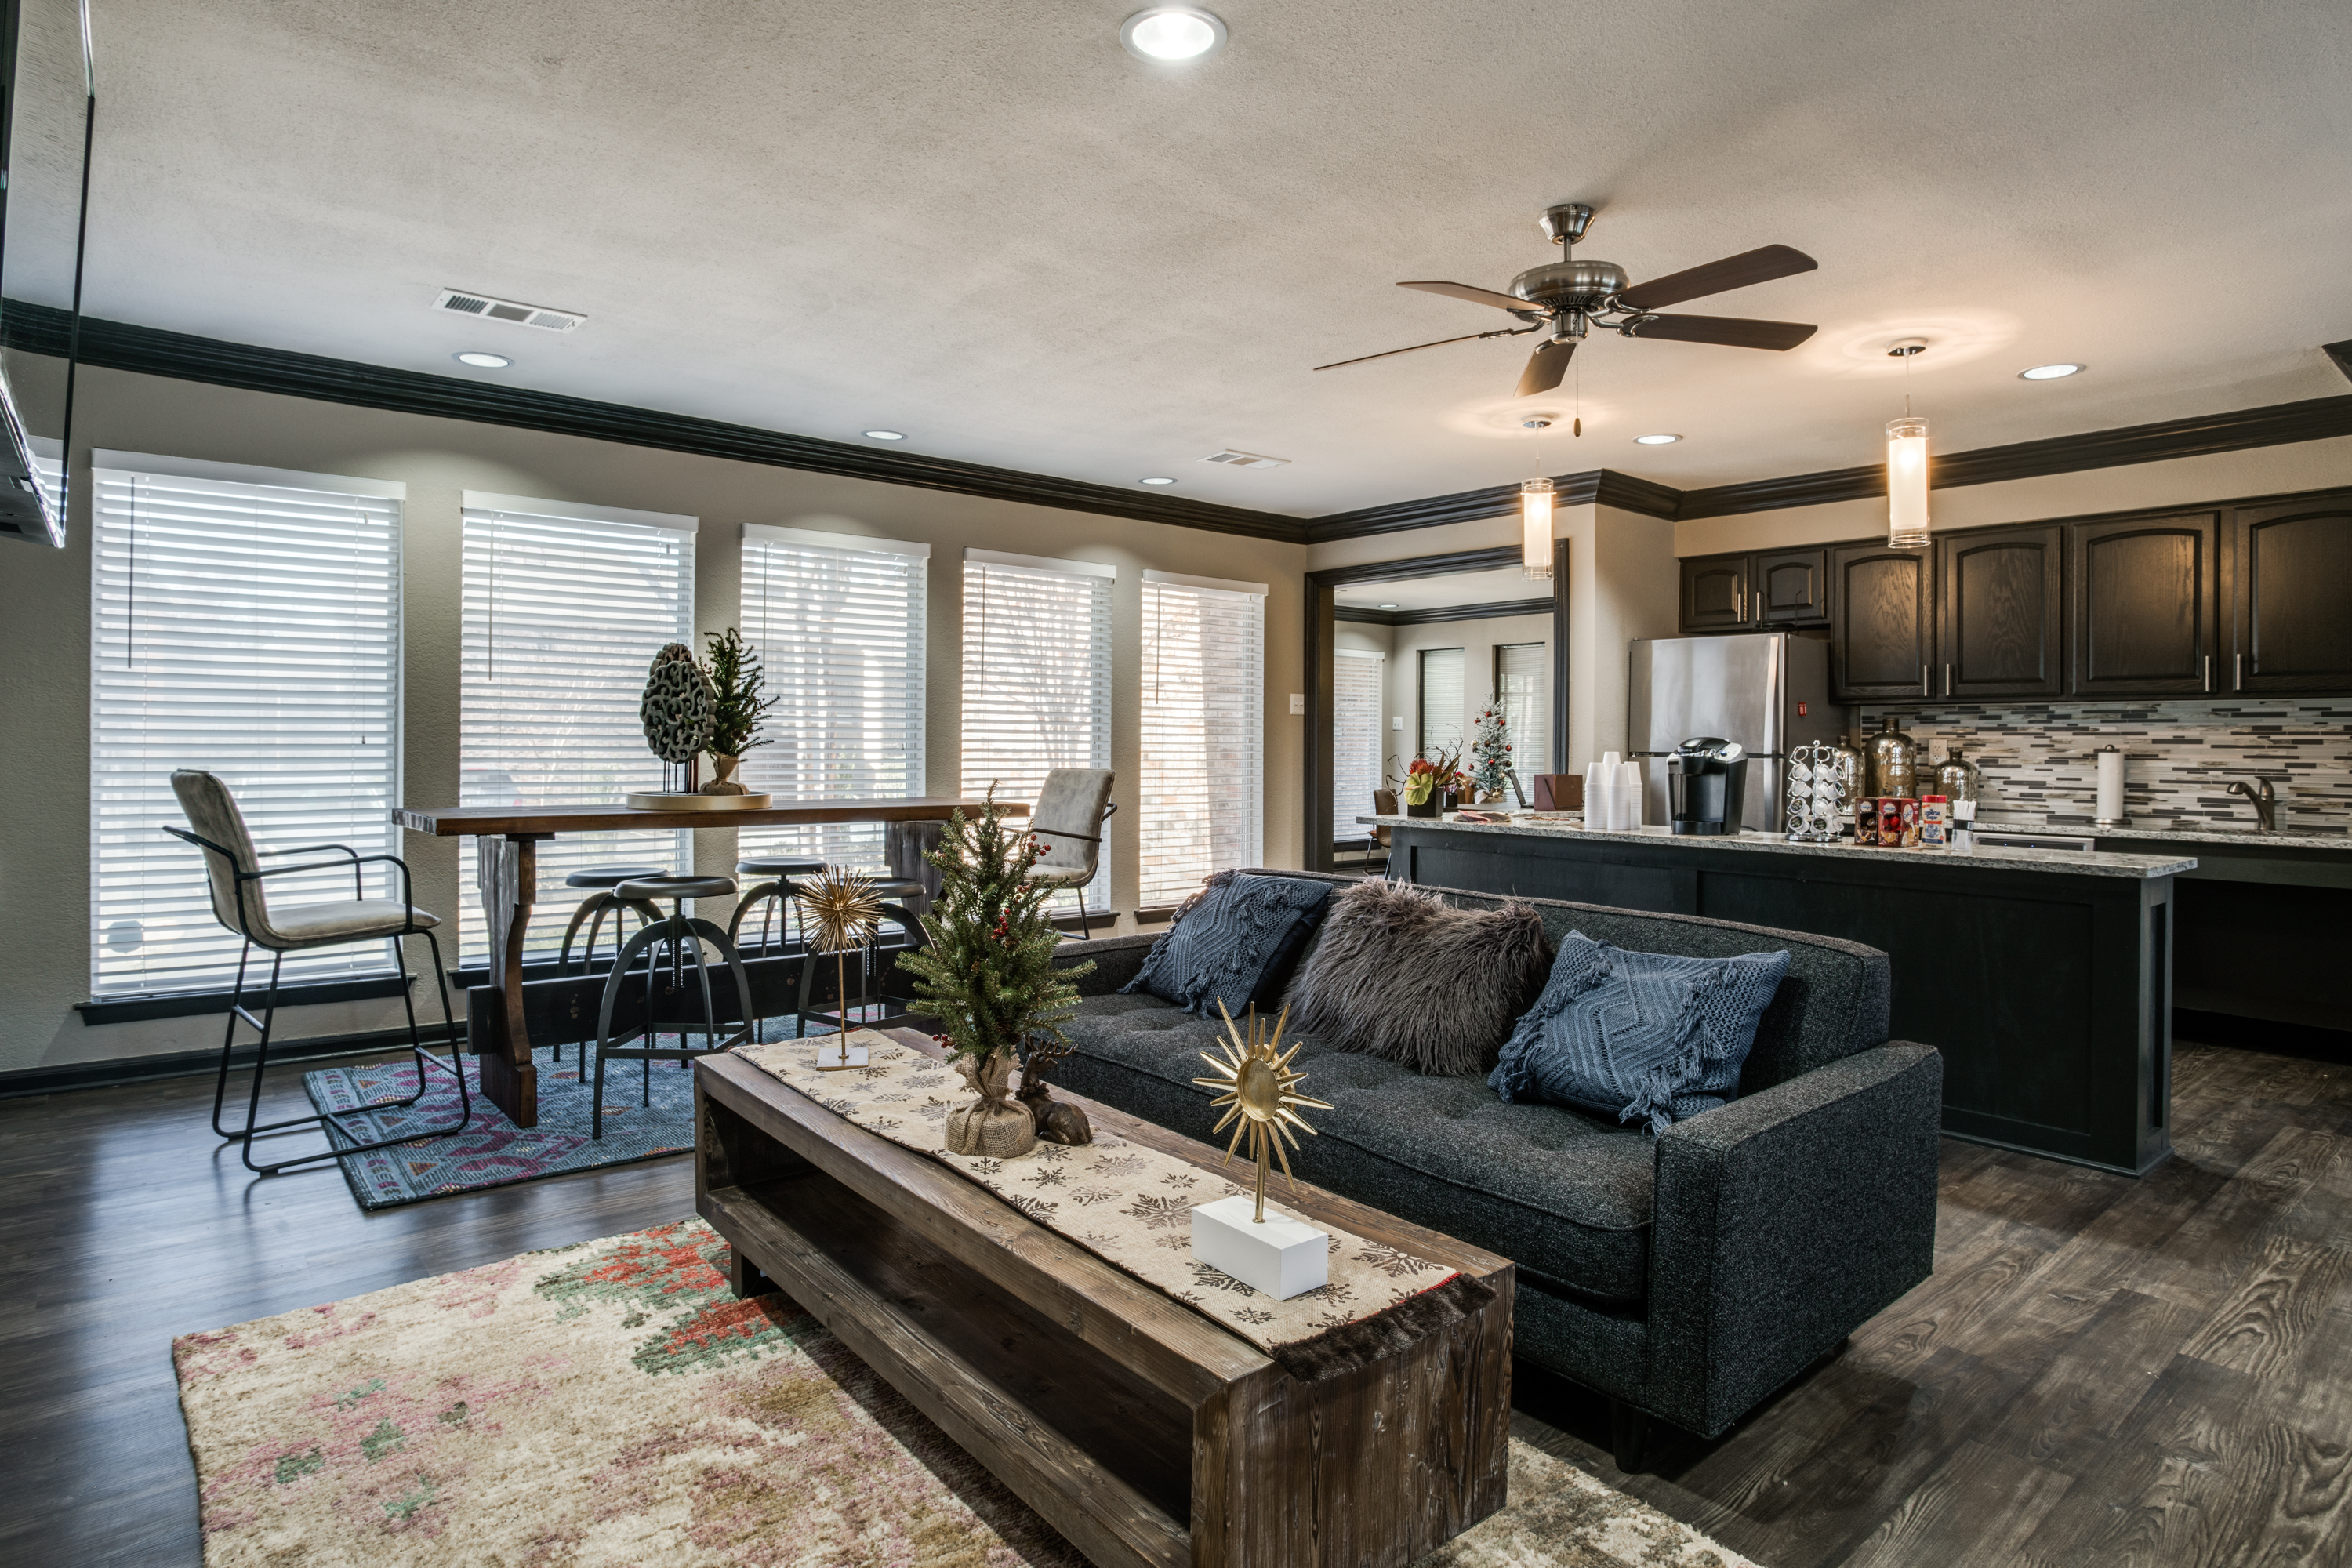 1 And 2 Bedroom Apartments For Rent In Dallas Tx